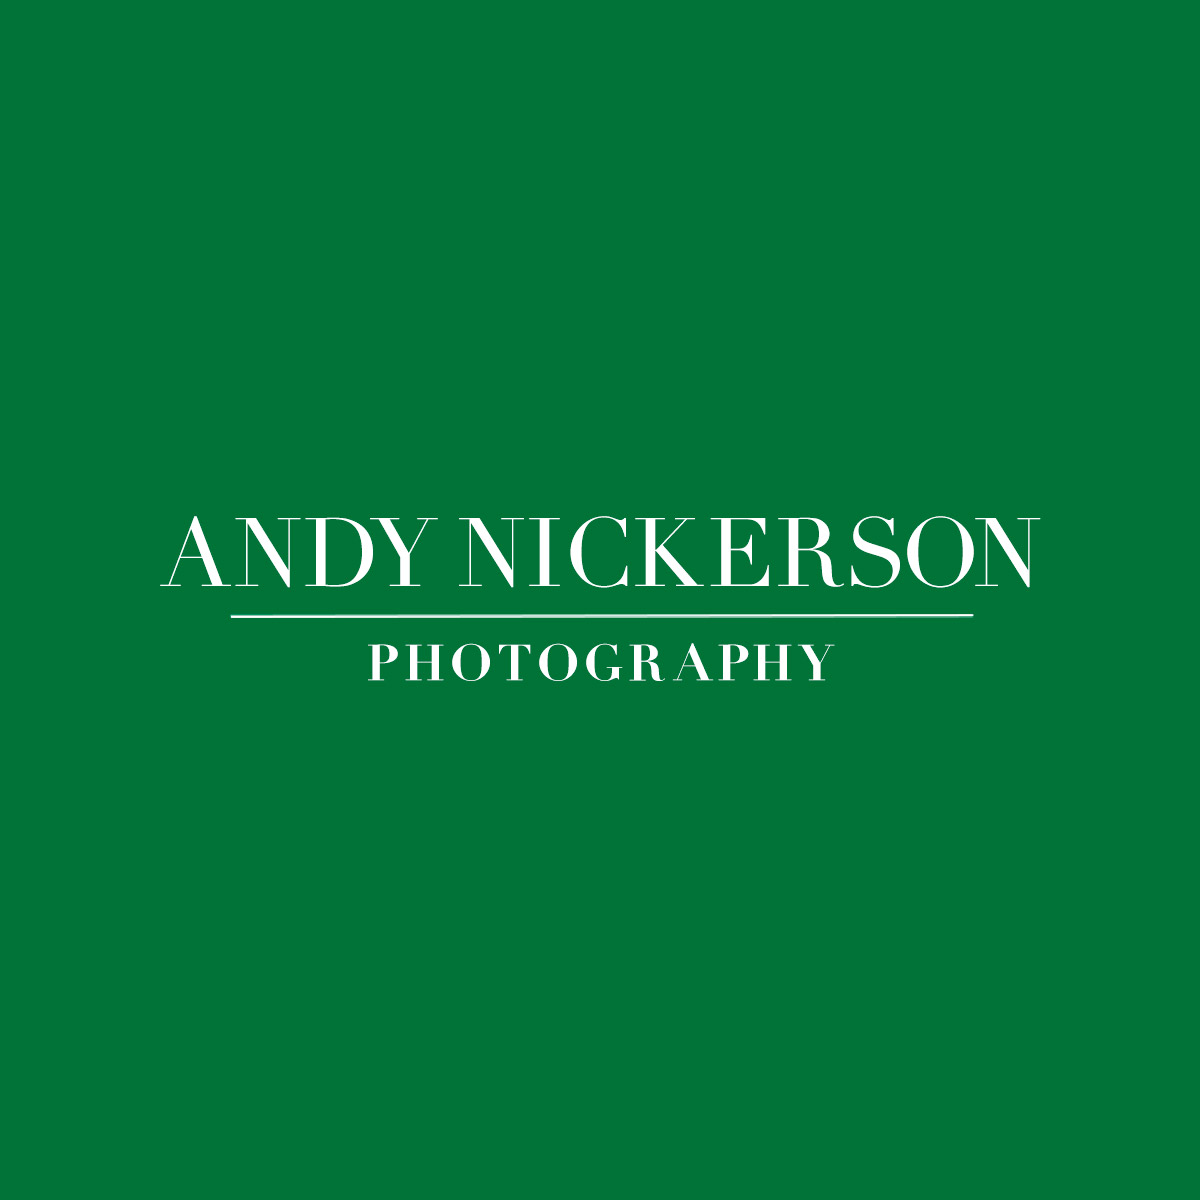 Andy Nickerson Photography's logo